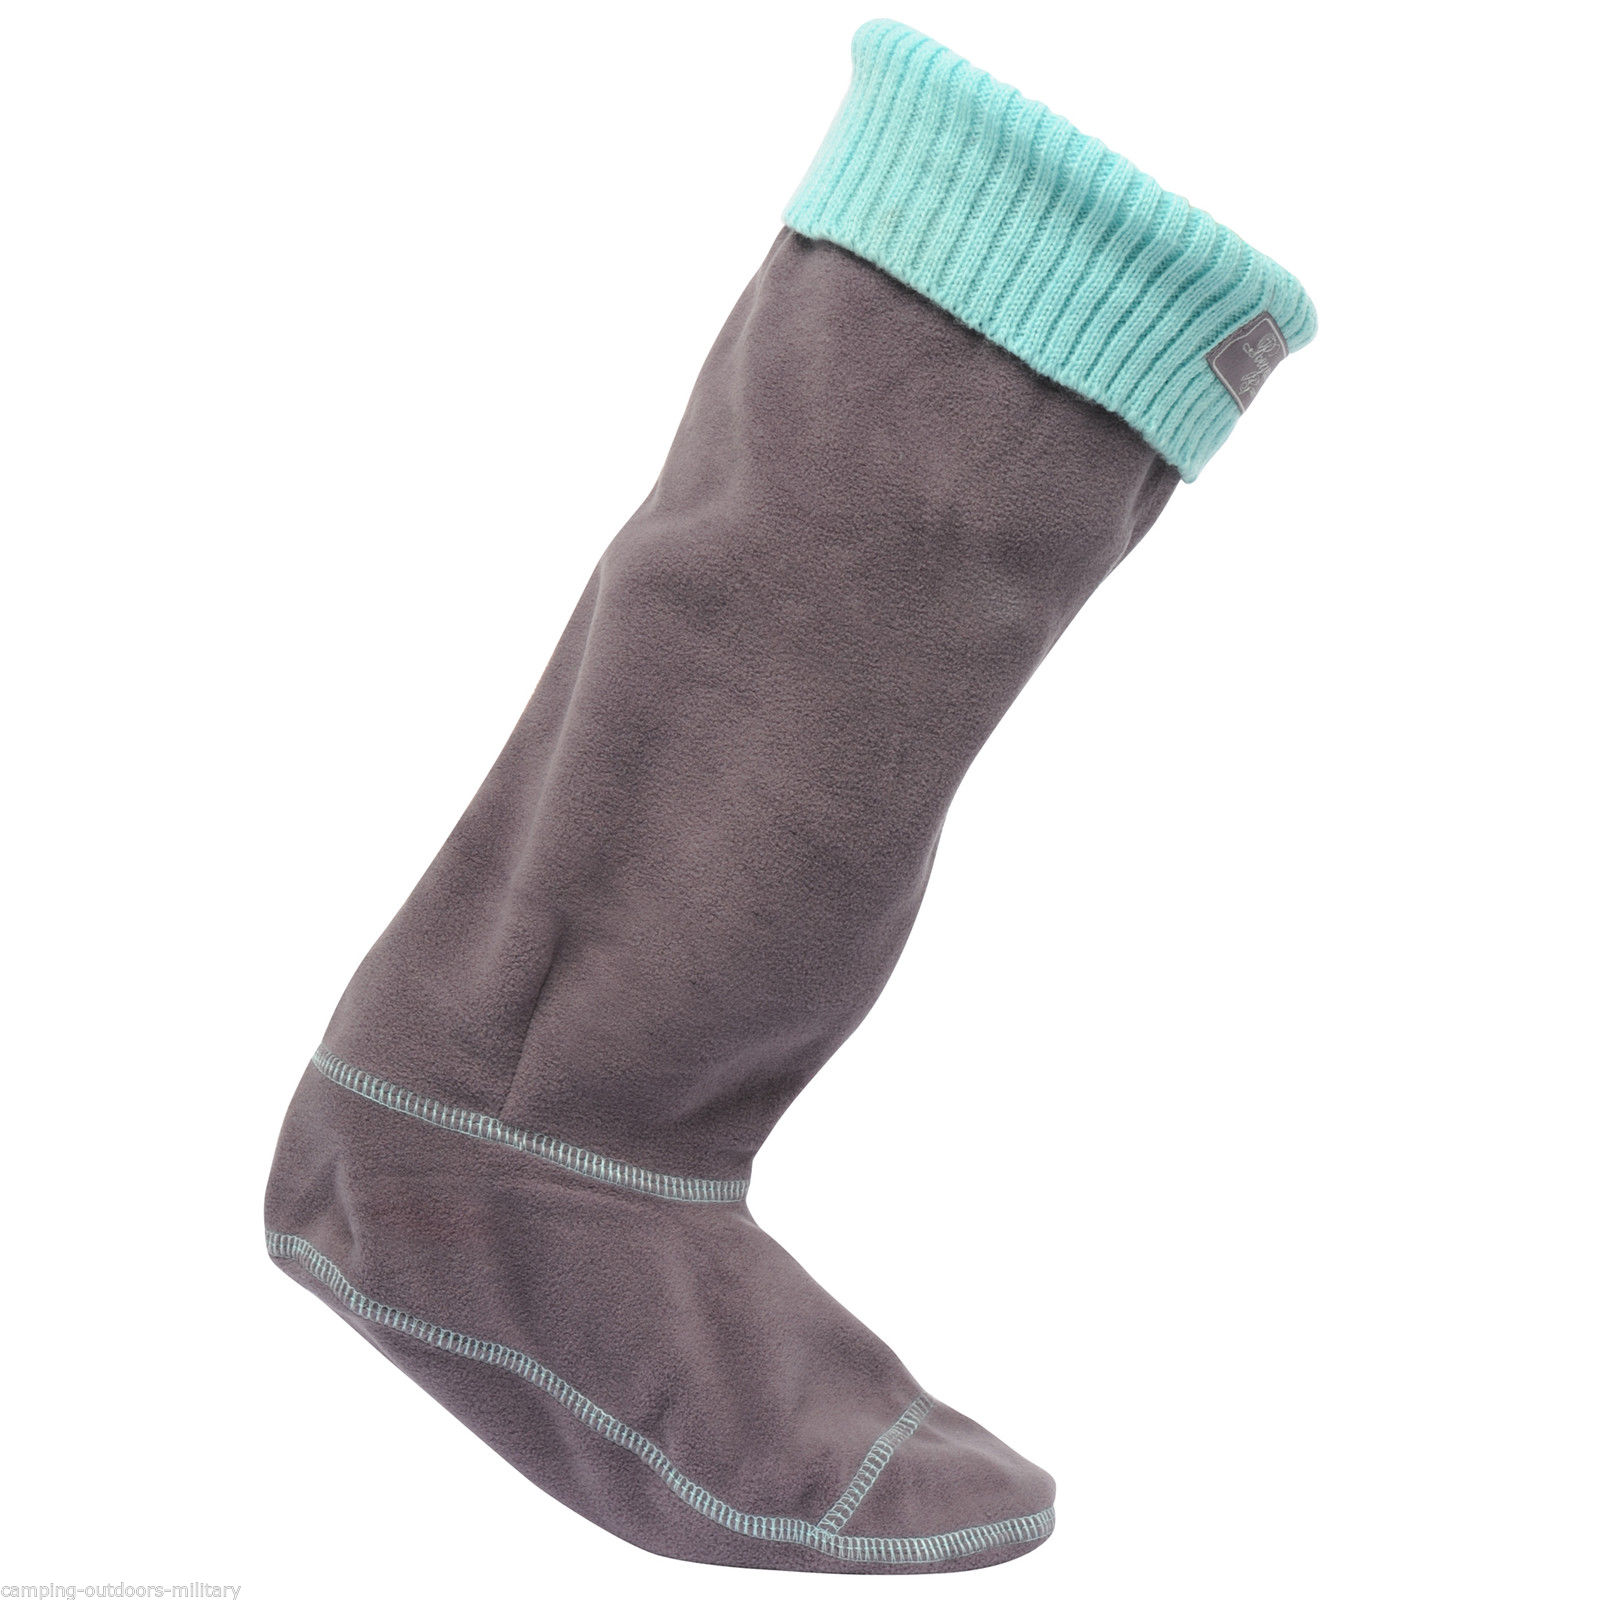 Regatta Great Outdoors Womens//Ladies Fleece Wellington Boot Socks RG1540